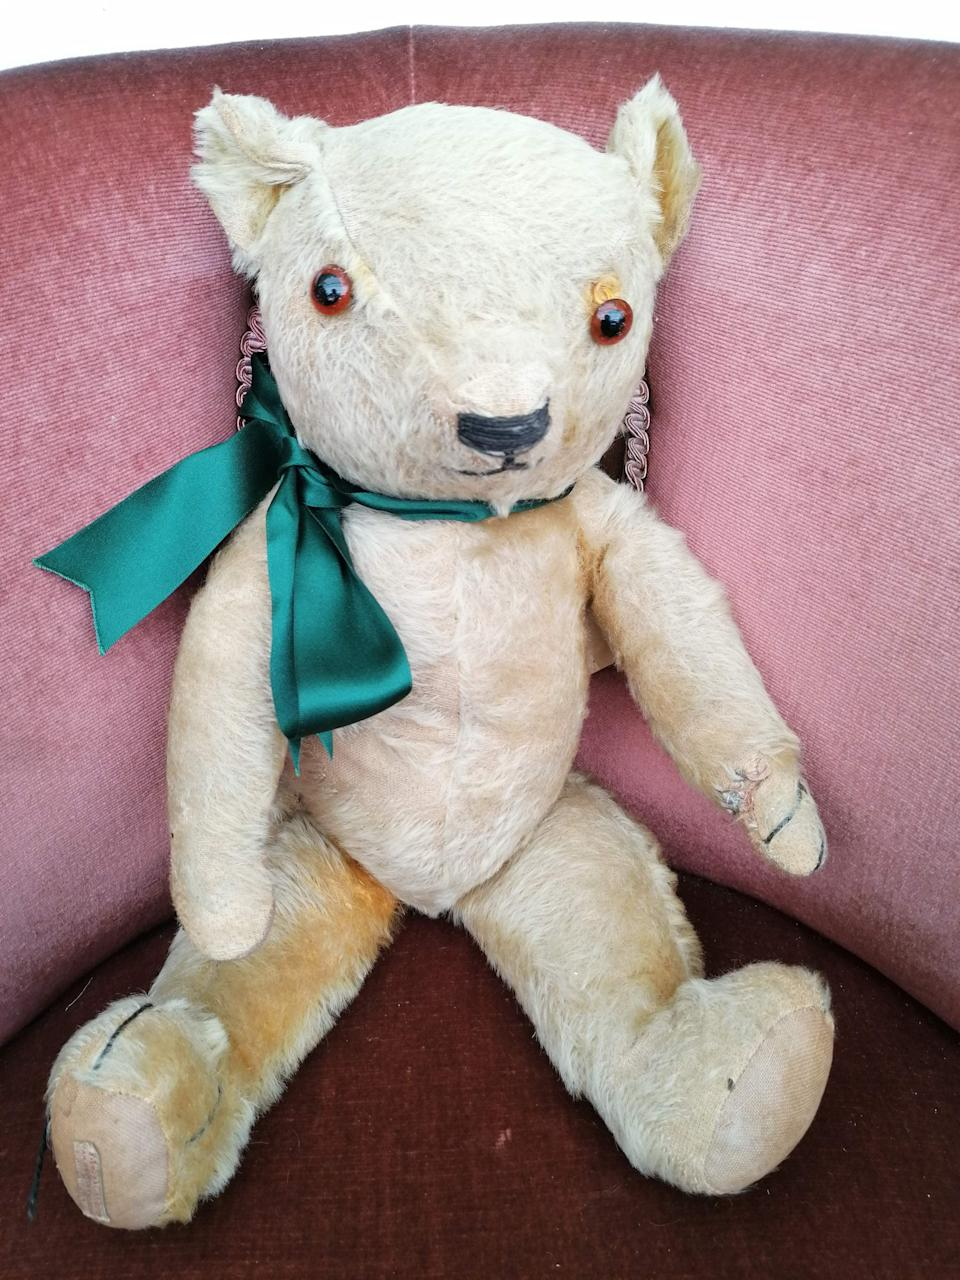 Wartime teddy bear Blitzy will be sold at auction after being found in an attic (Hansons/PA) (PA Media)